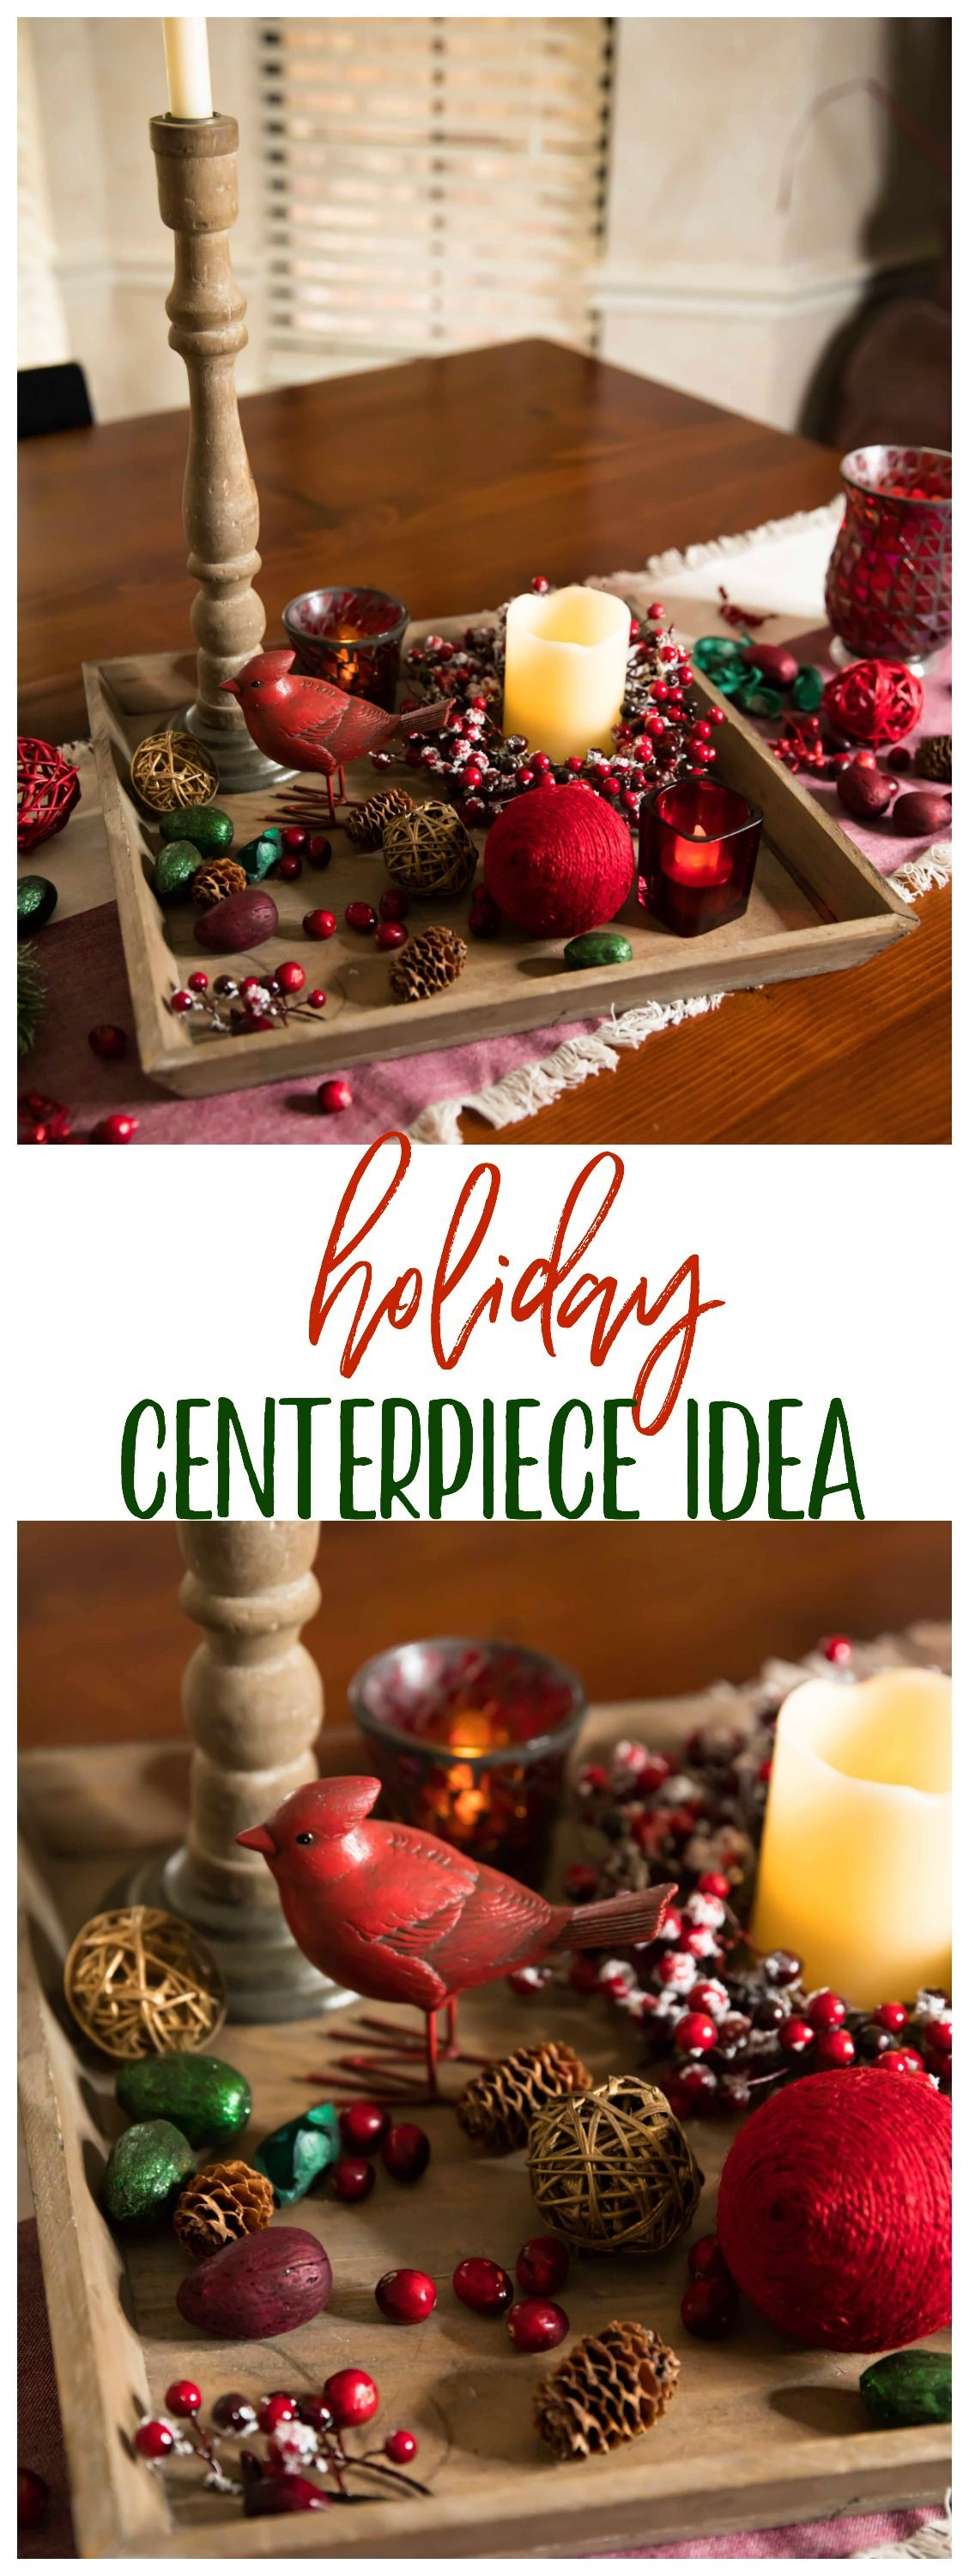 An Easy, Festive Centerpiece Idea For The Holidays #Ad #Fallforfresh